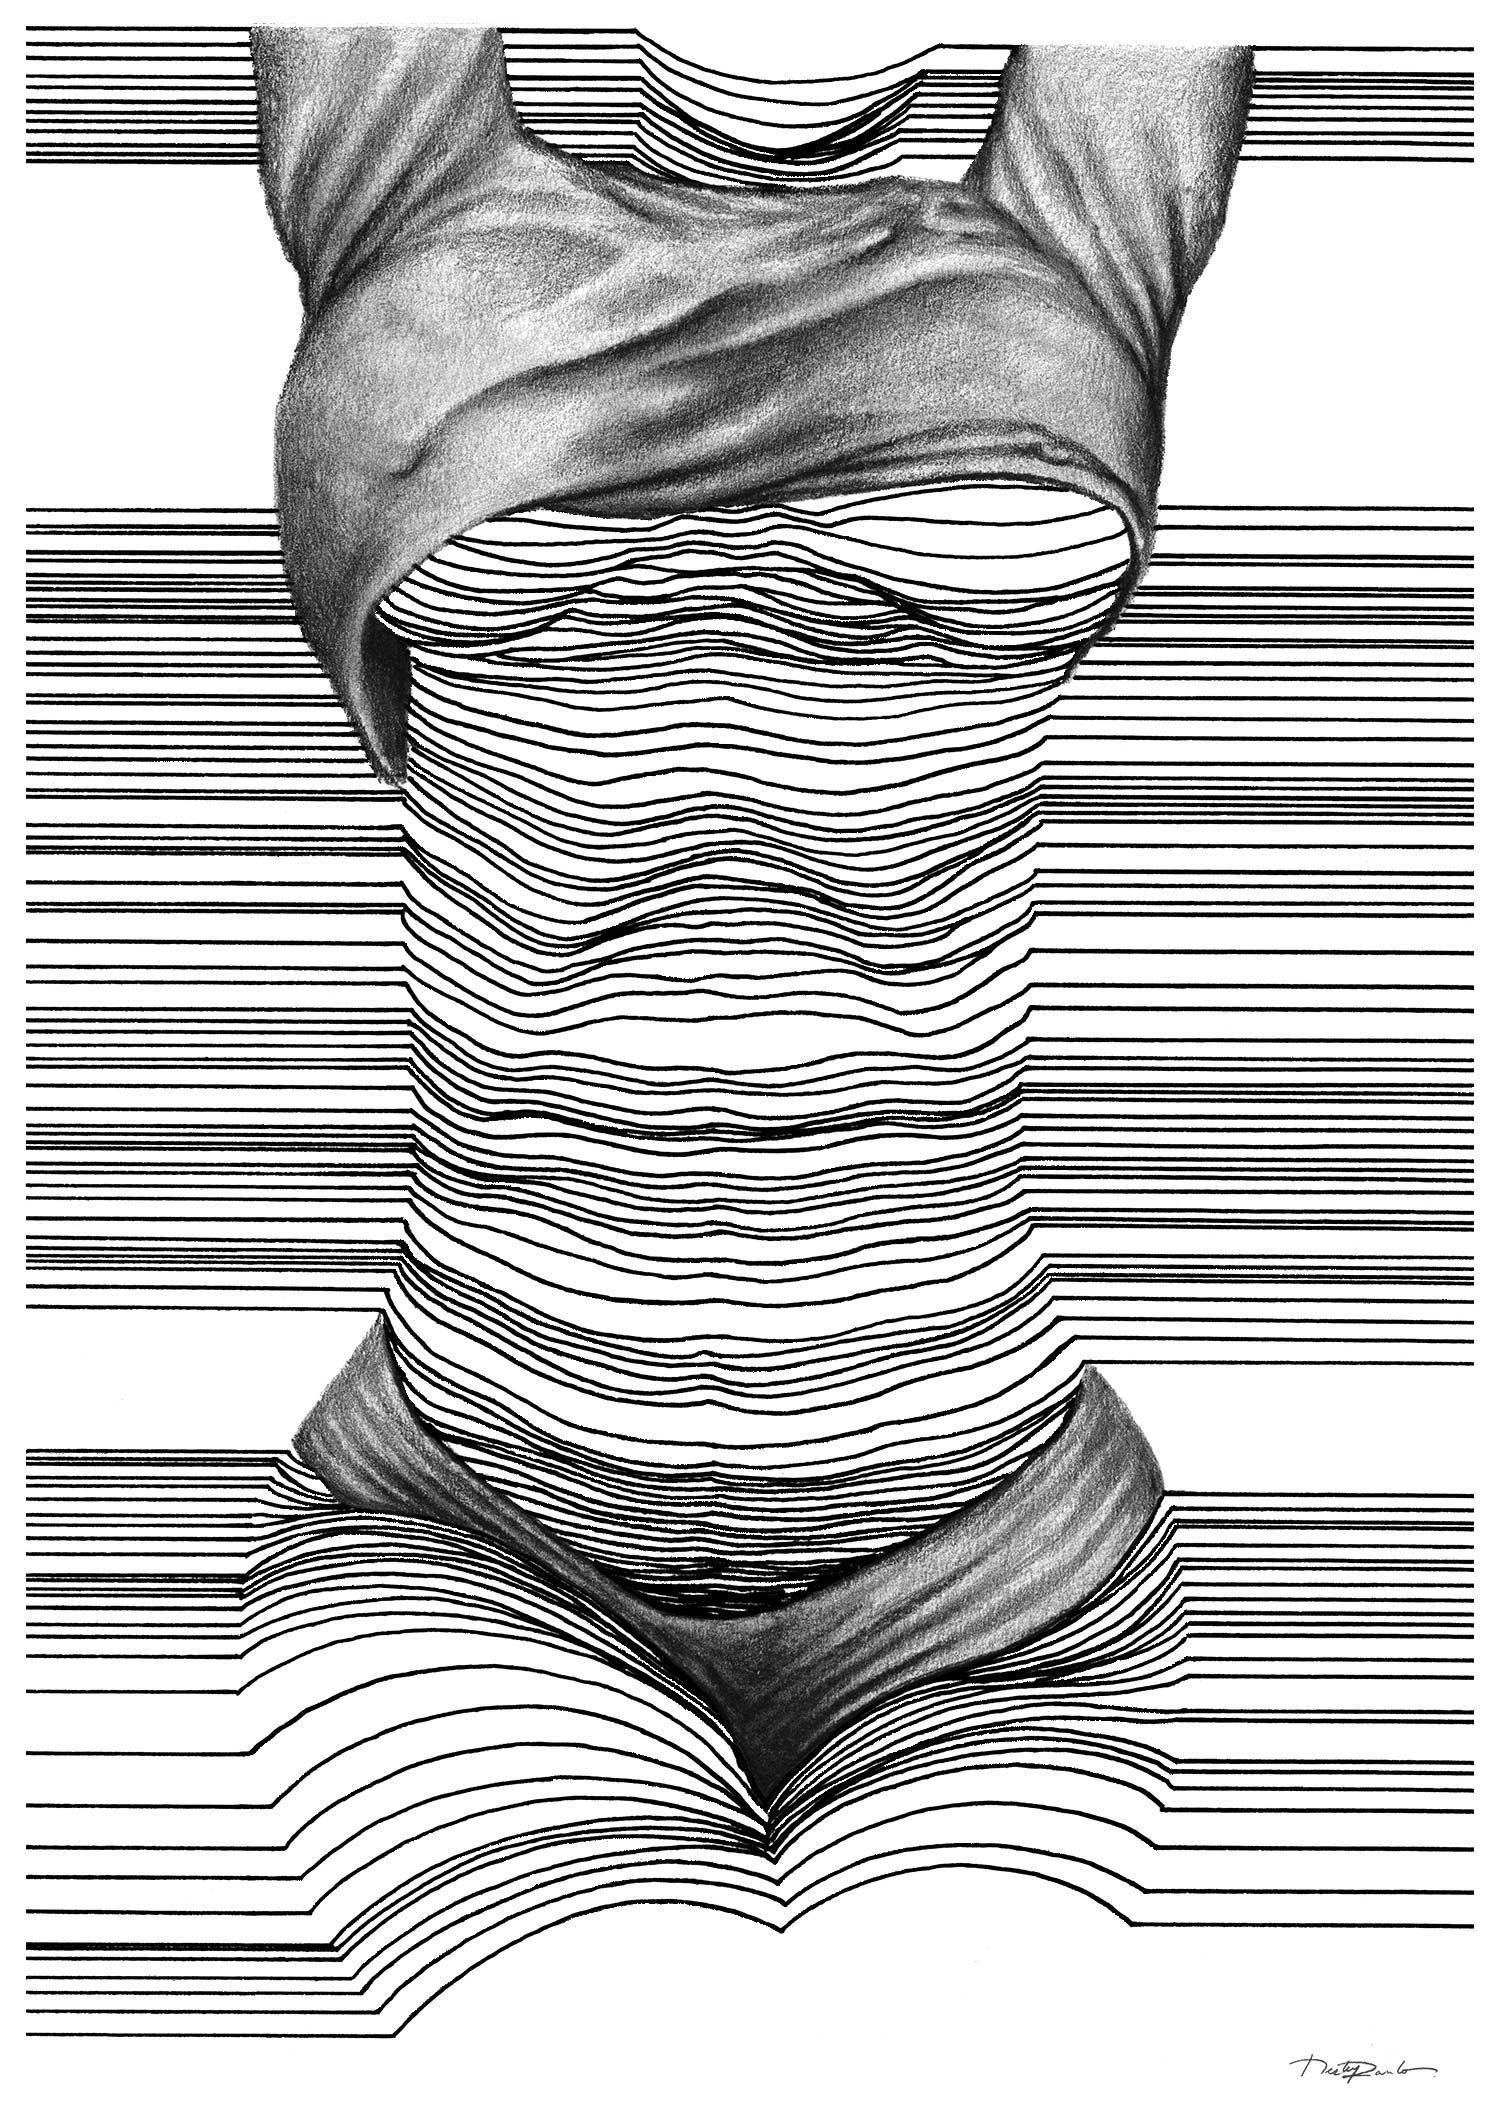 Drawing Lines With D : Sensual d line art by nester formentera drawings